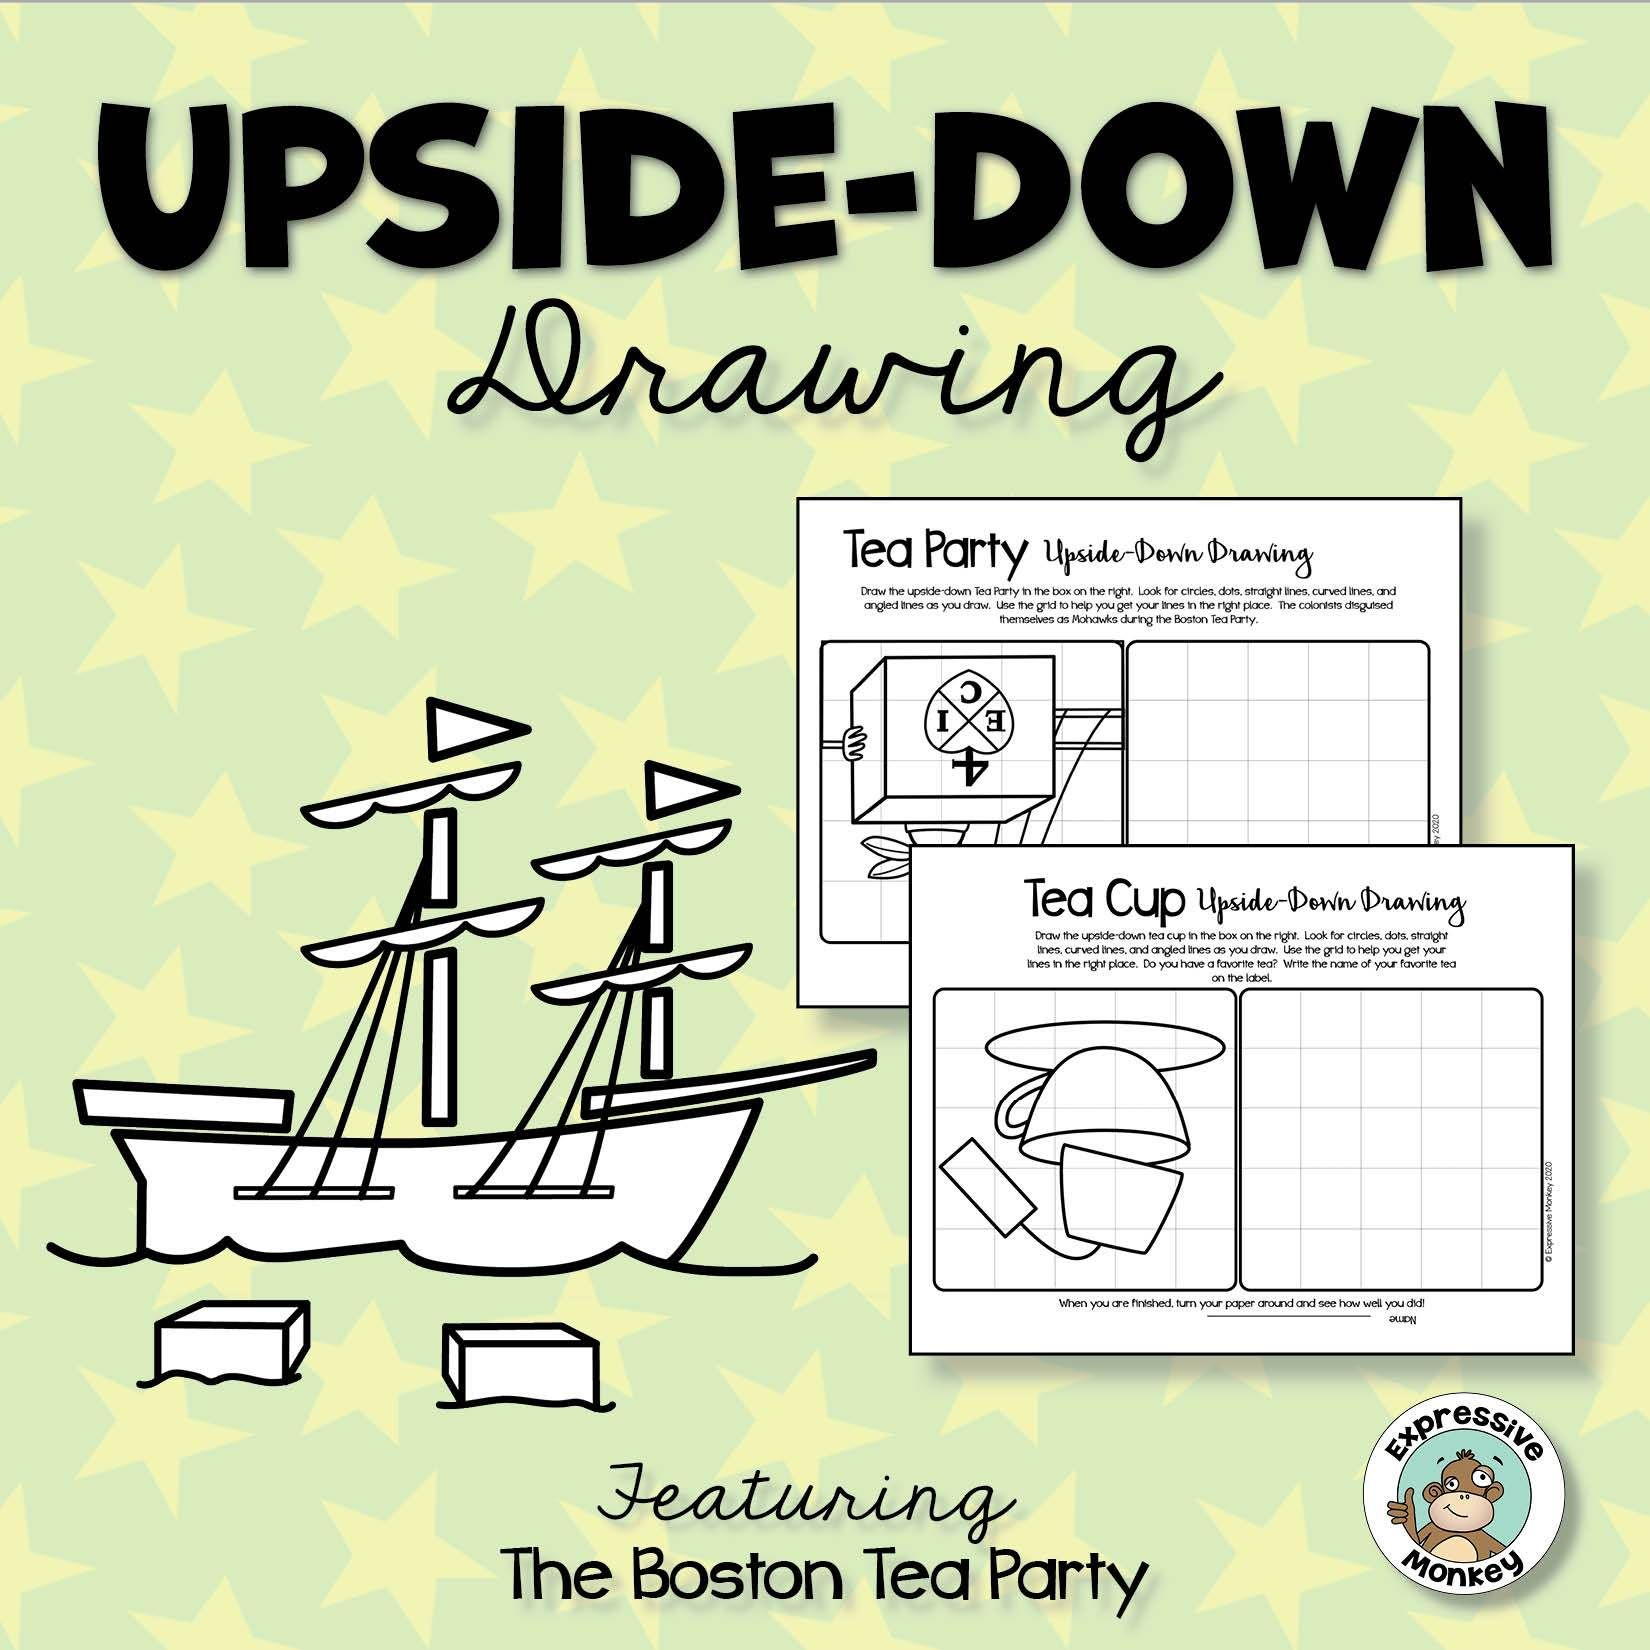 hight resolution of Boston Tea Party Upside-Down Drawing   Boston tea party lesson